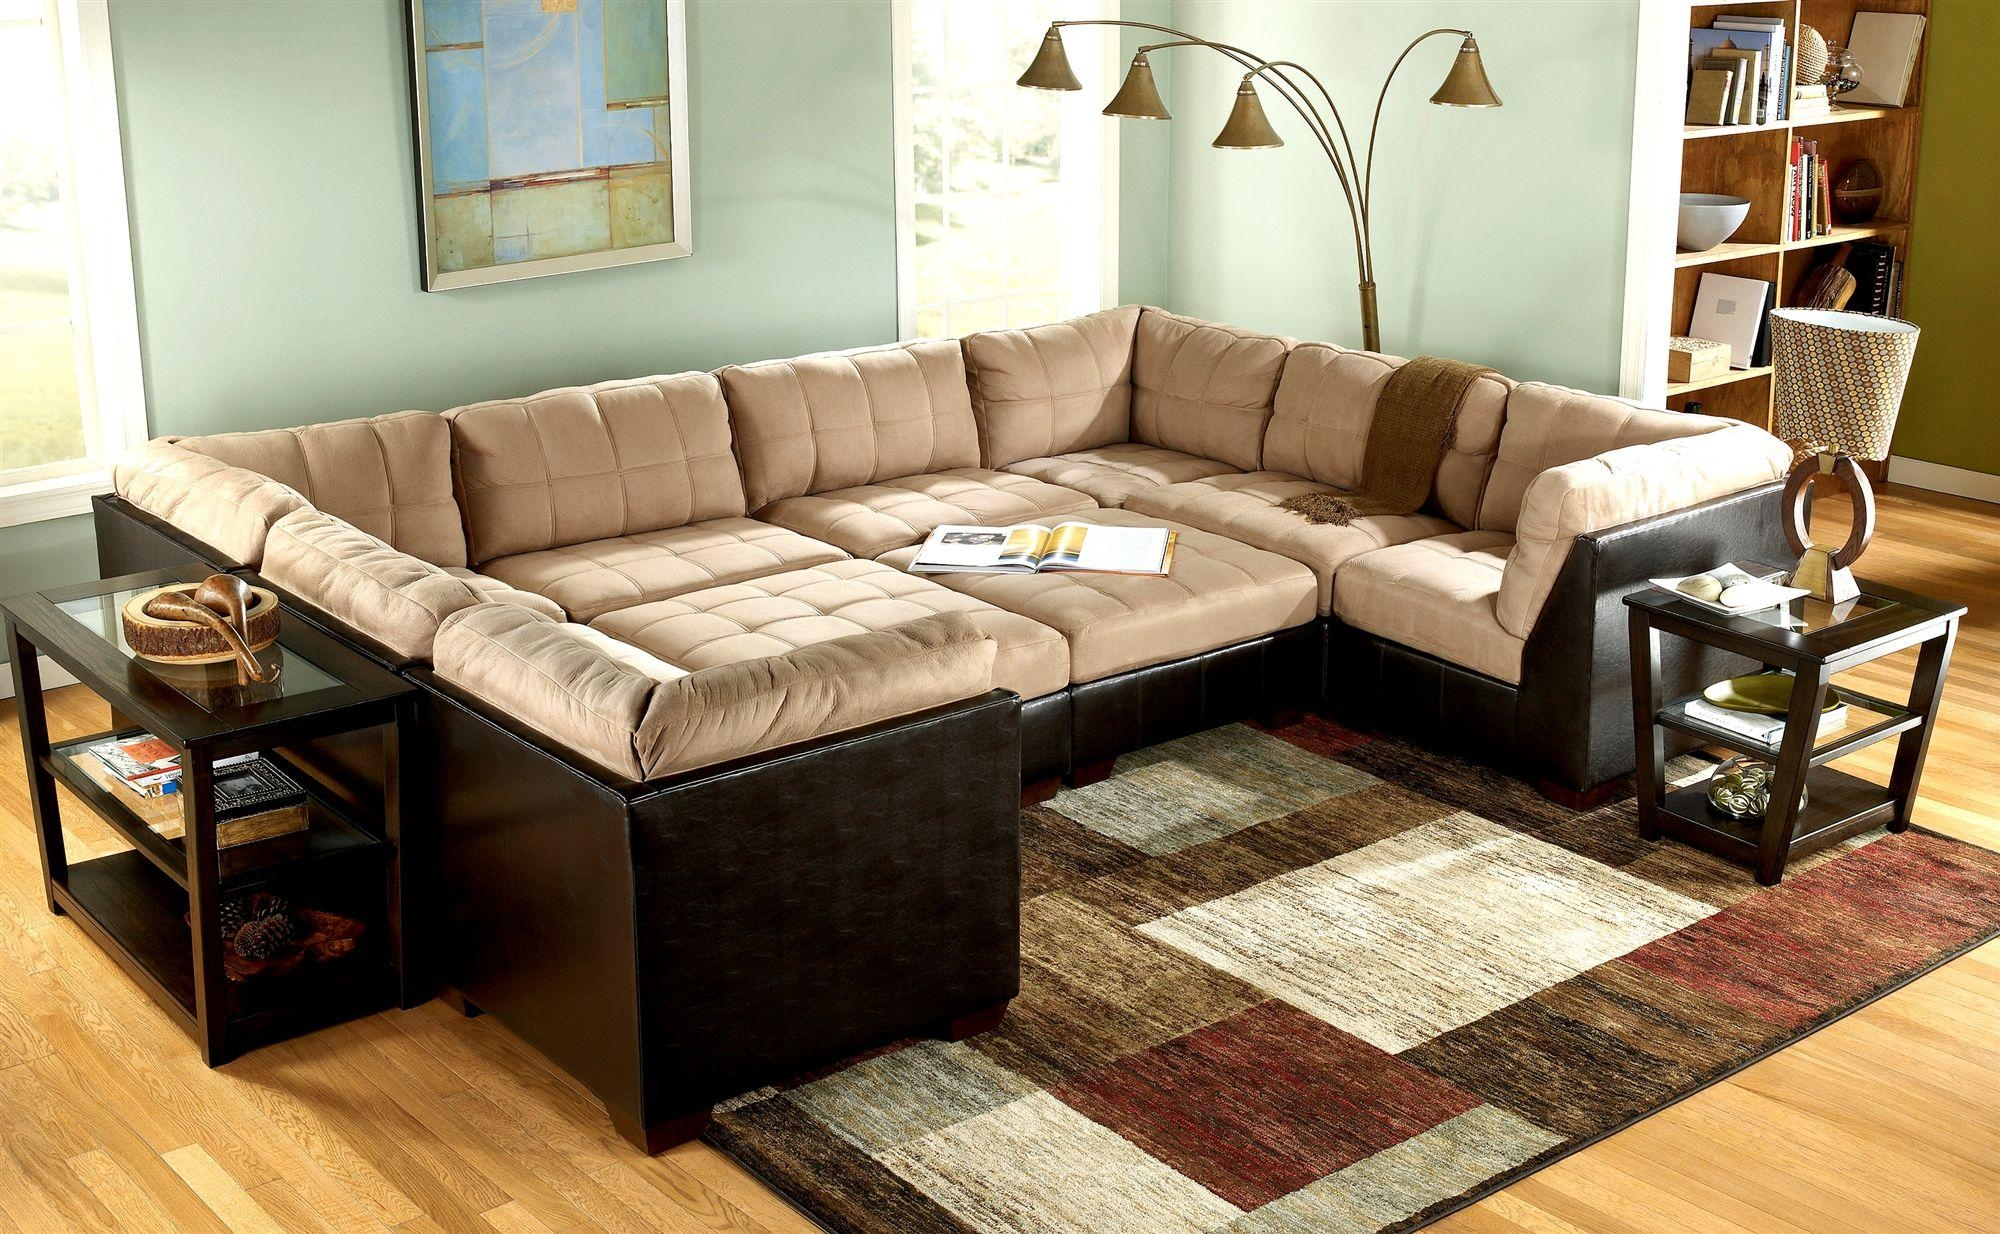 Sofa: Cool Couches For Provides A Warm To Comfortable Feel And Low Inside Sectional With Oversized Ottoman (Image 14 of 20)